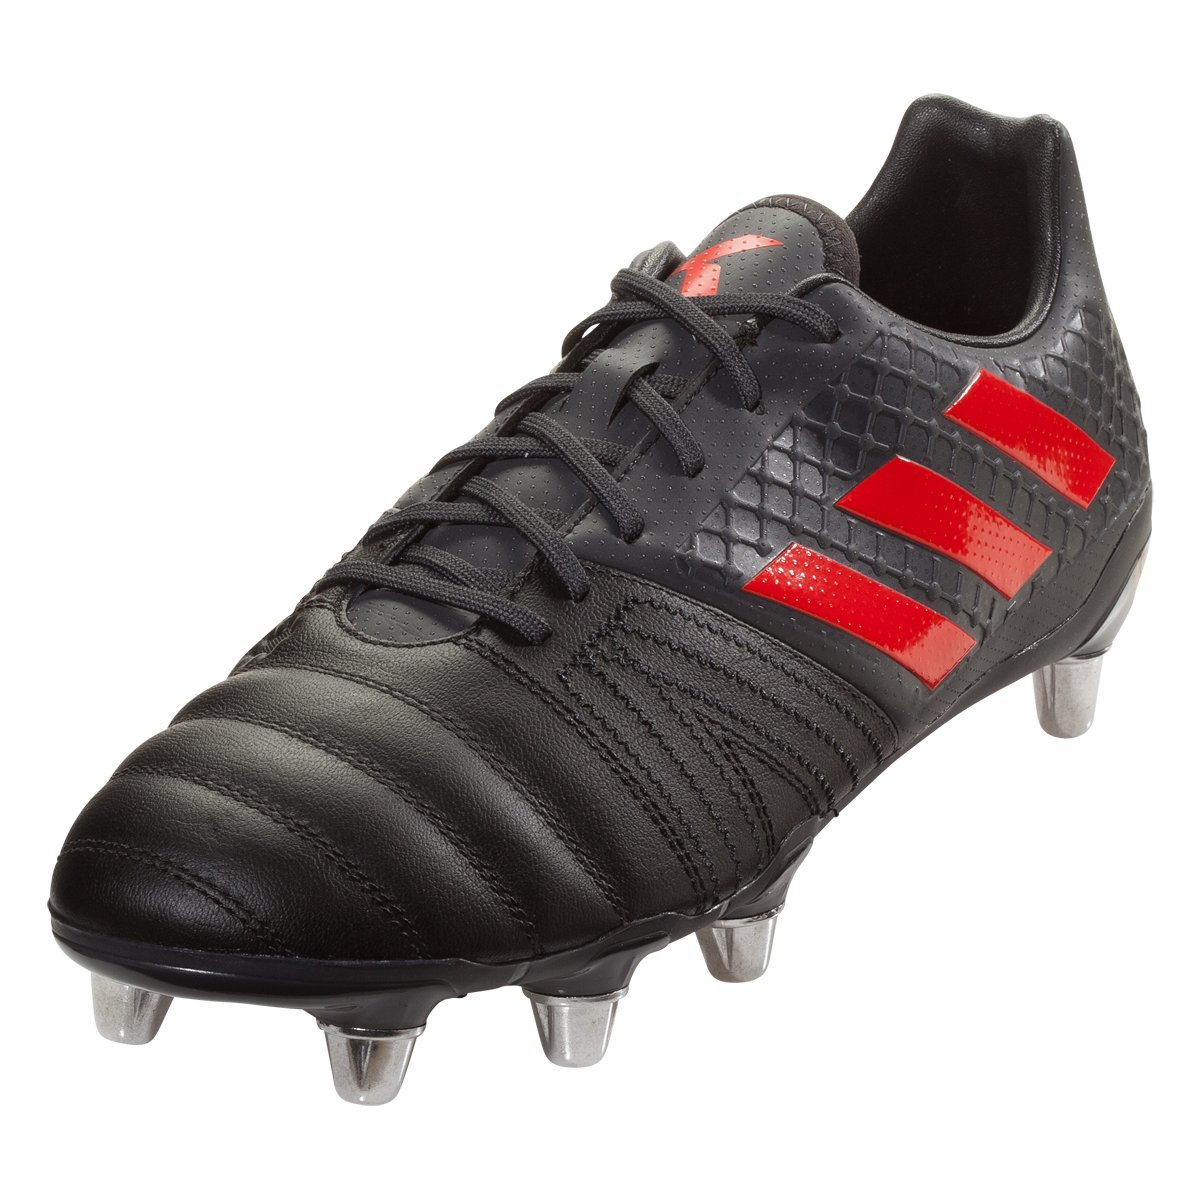 adidas Kakari Elite SG Rugby Boot, Black, US 10.5